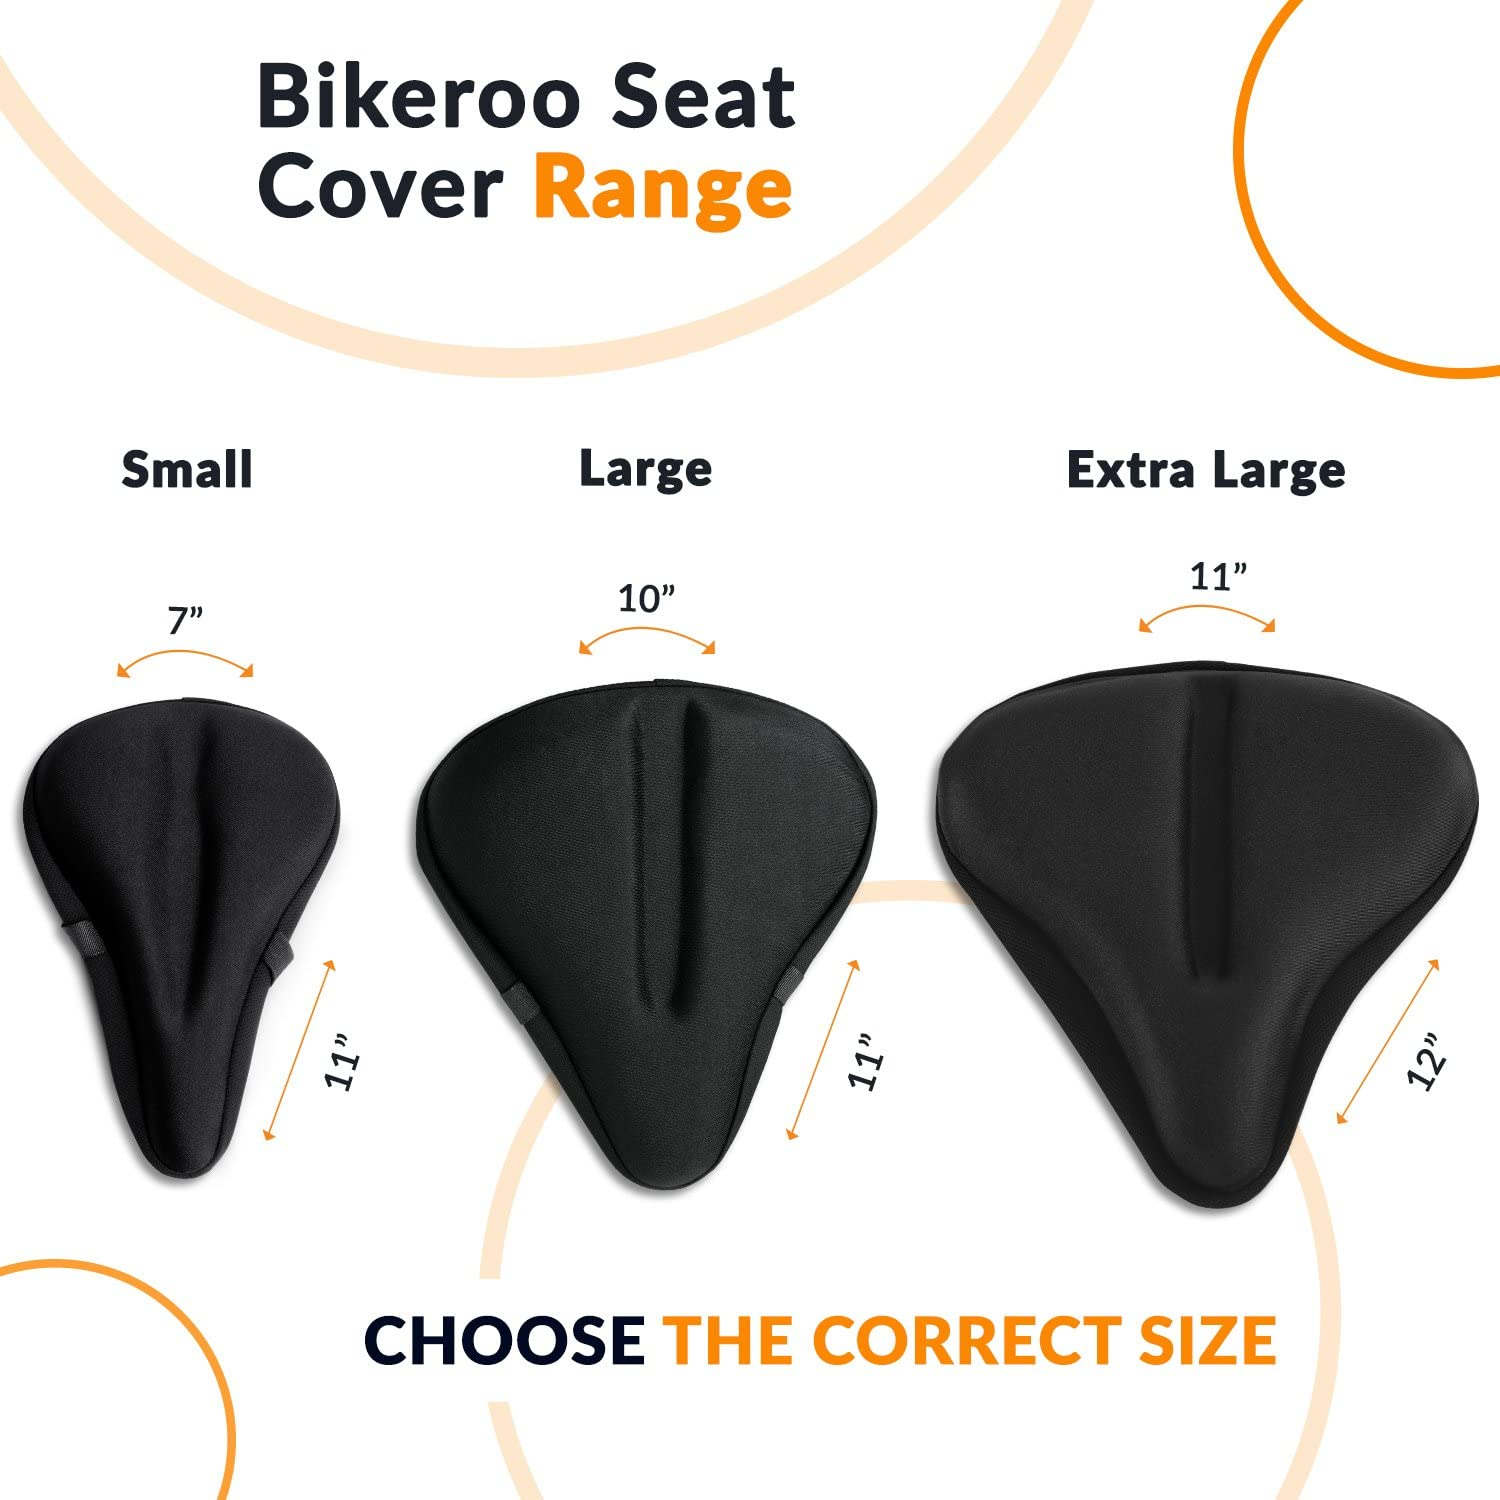 Bike Seat Cover Comfortable Large Wide Memory Bicycle Saddle Cover for Women Men